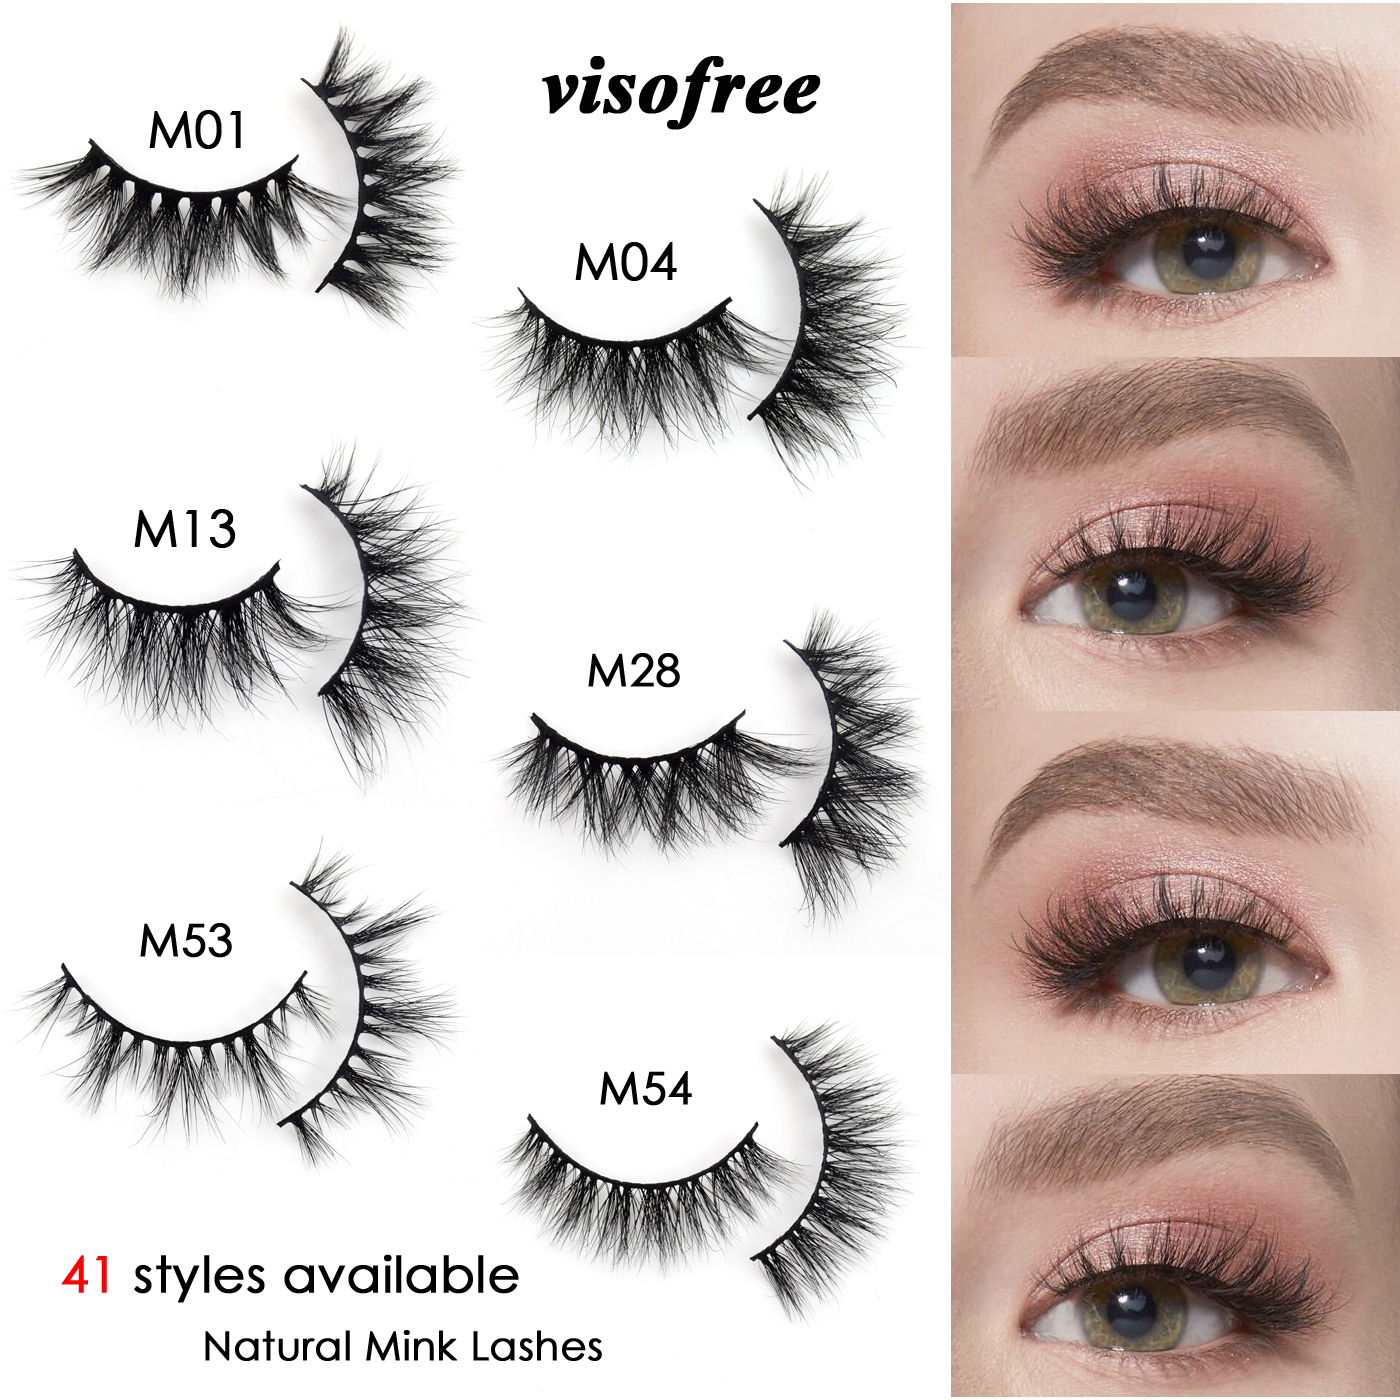 Visofree Eyelashes Makeup 3d Mink Lashes Natural Short Mink Eyelashes Natural Lashes Wispy Eye Lashes Maquillaje Fake Lashes